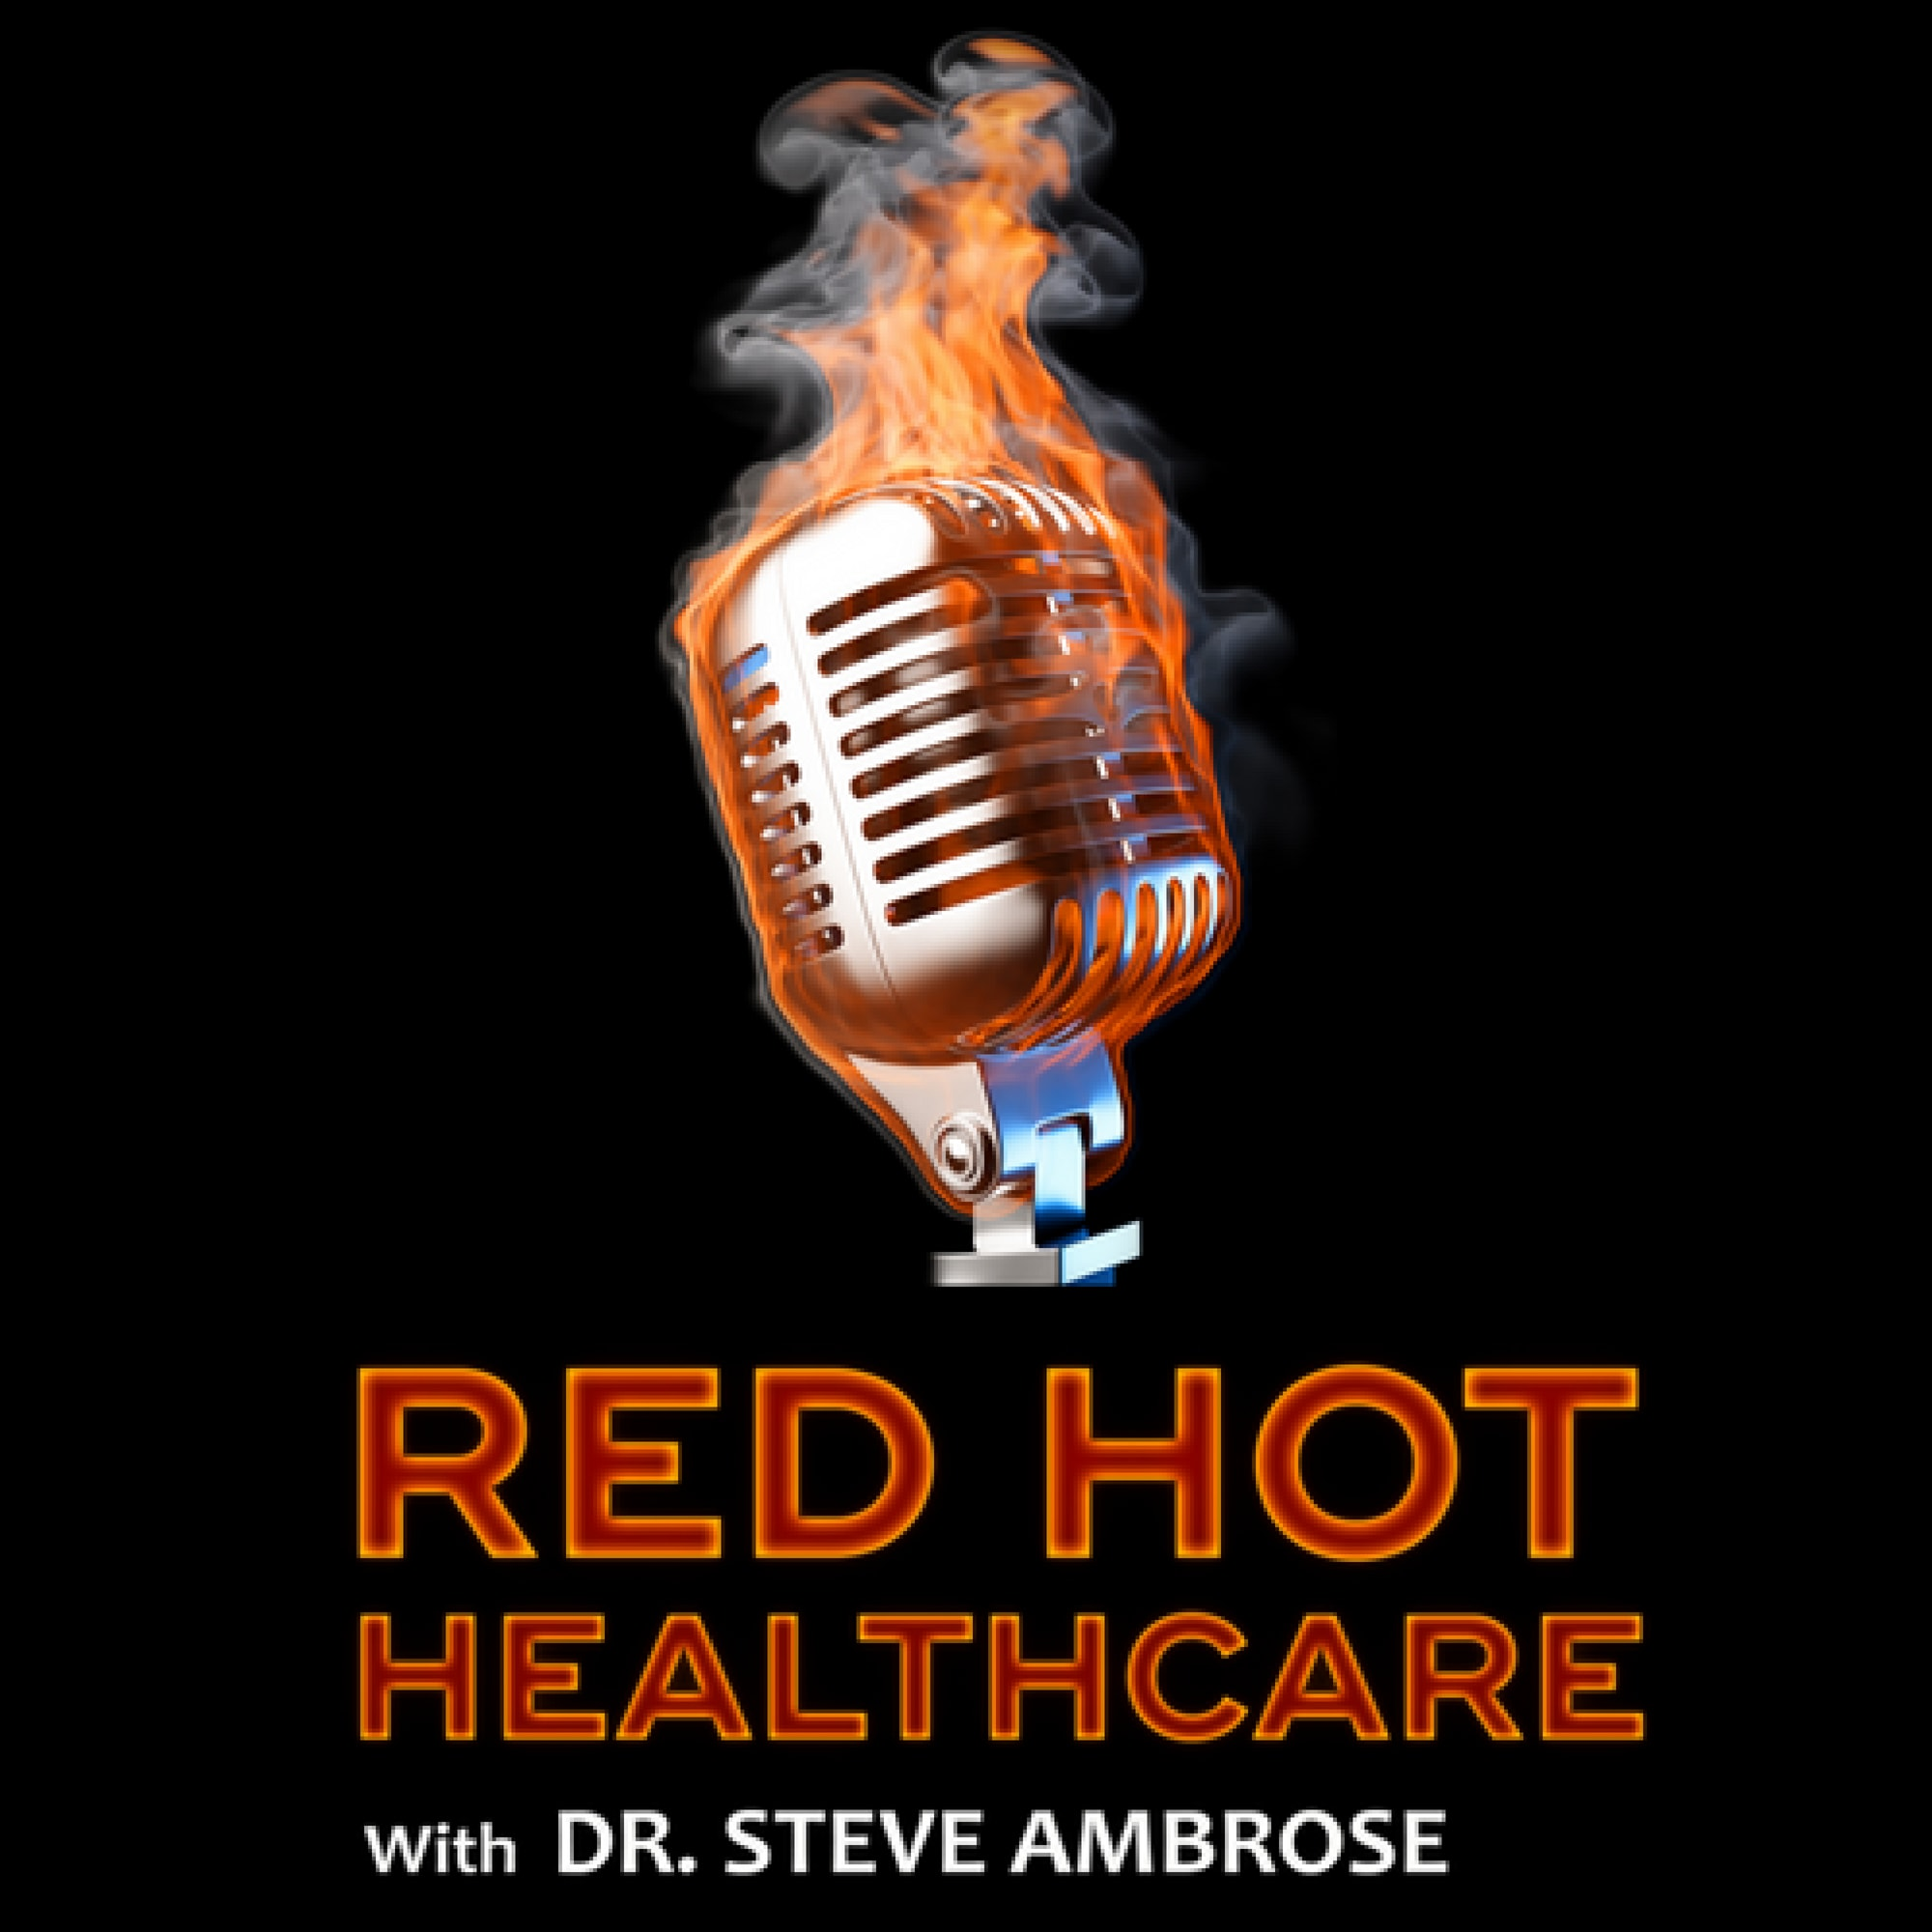 RED HOT HEALTHCARE show art